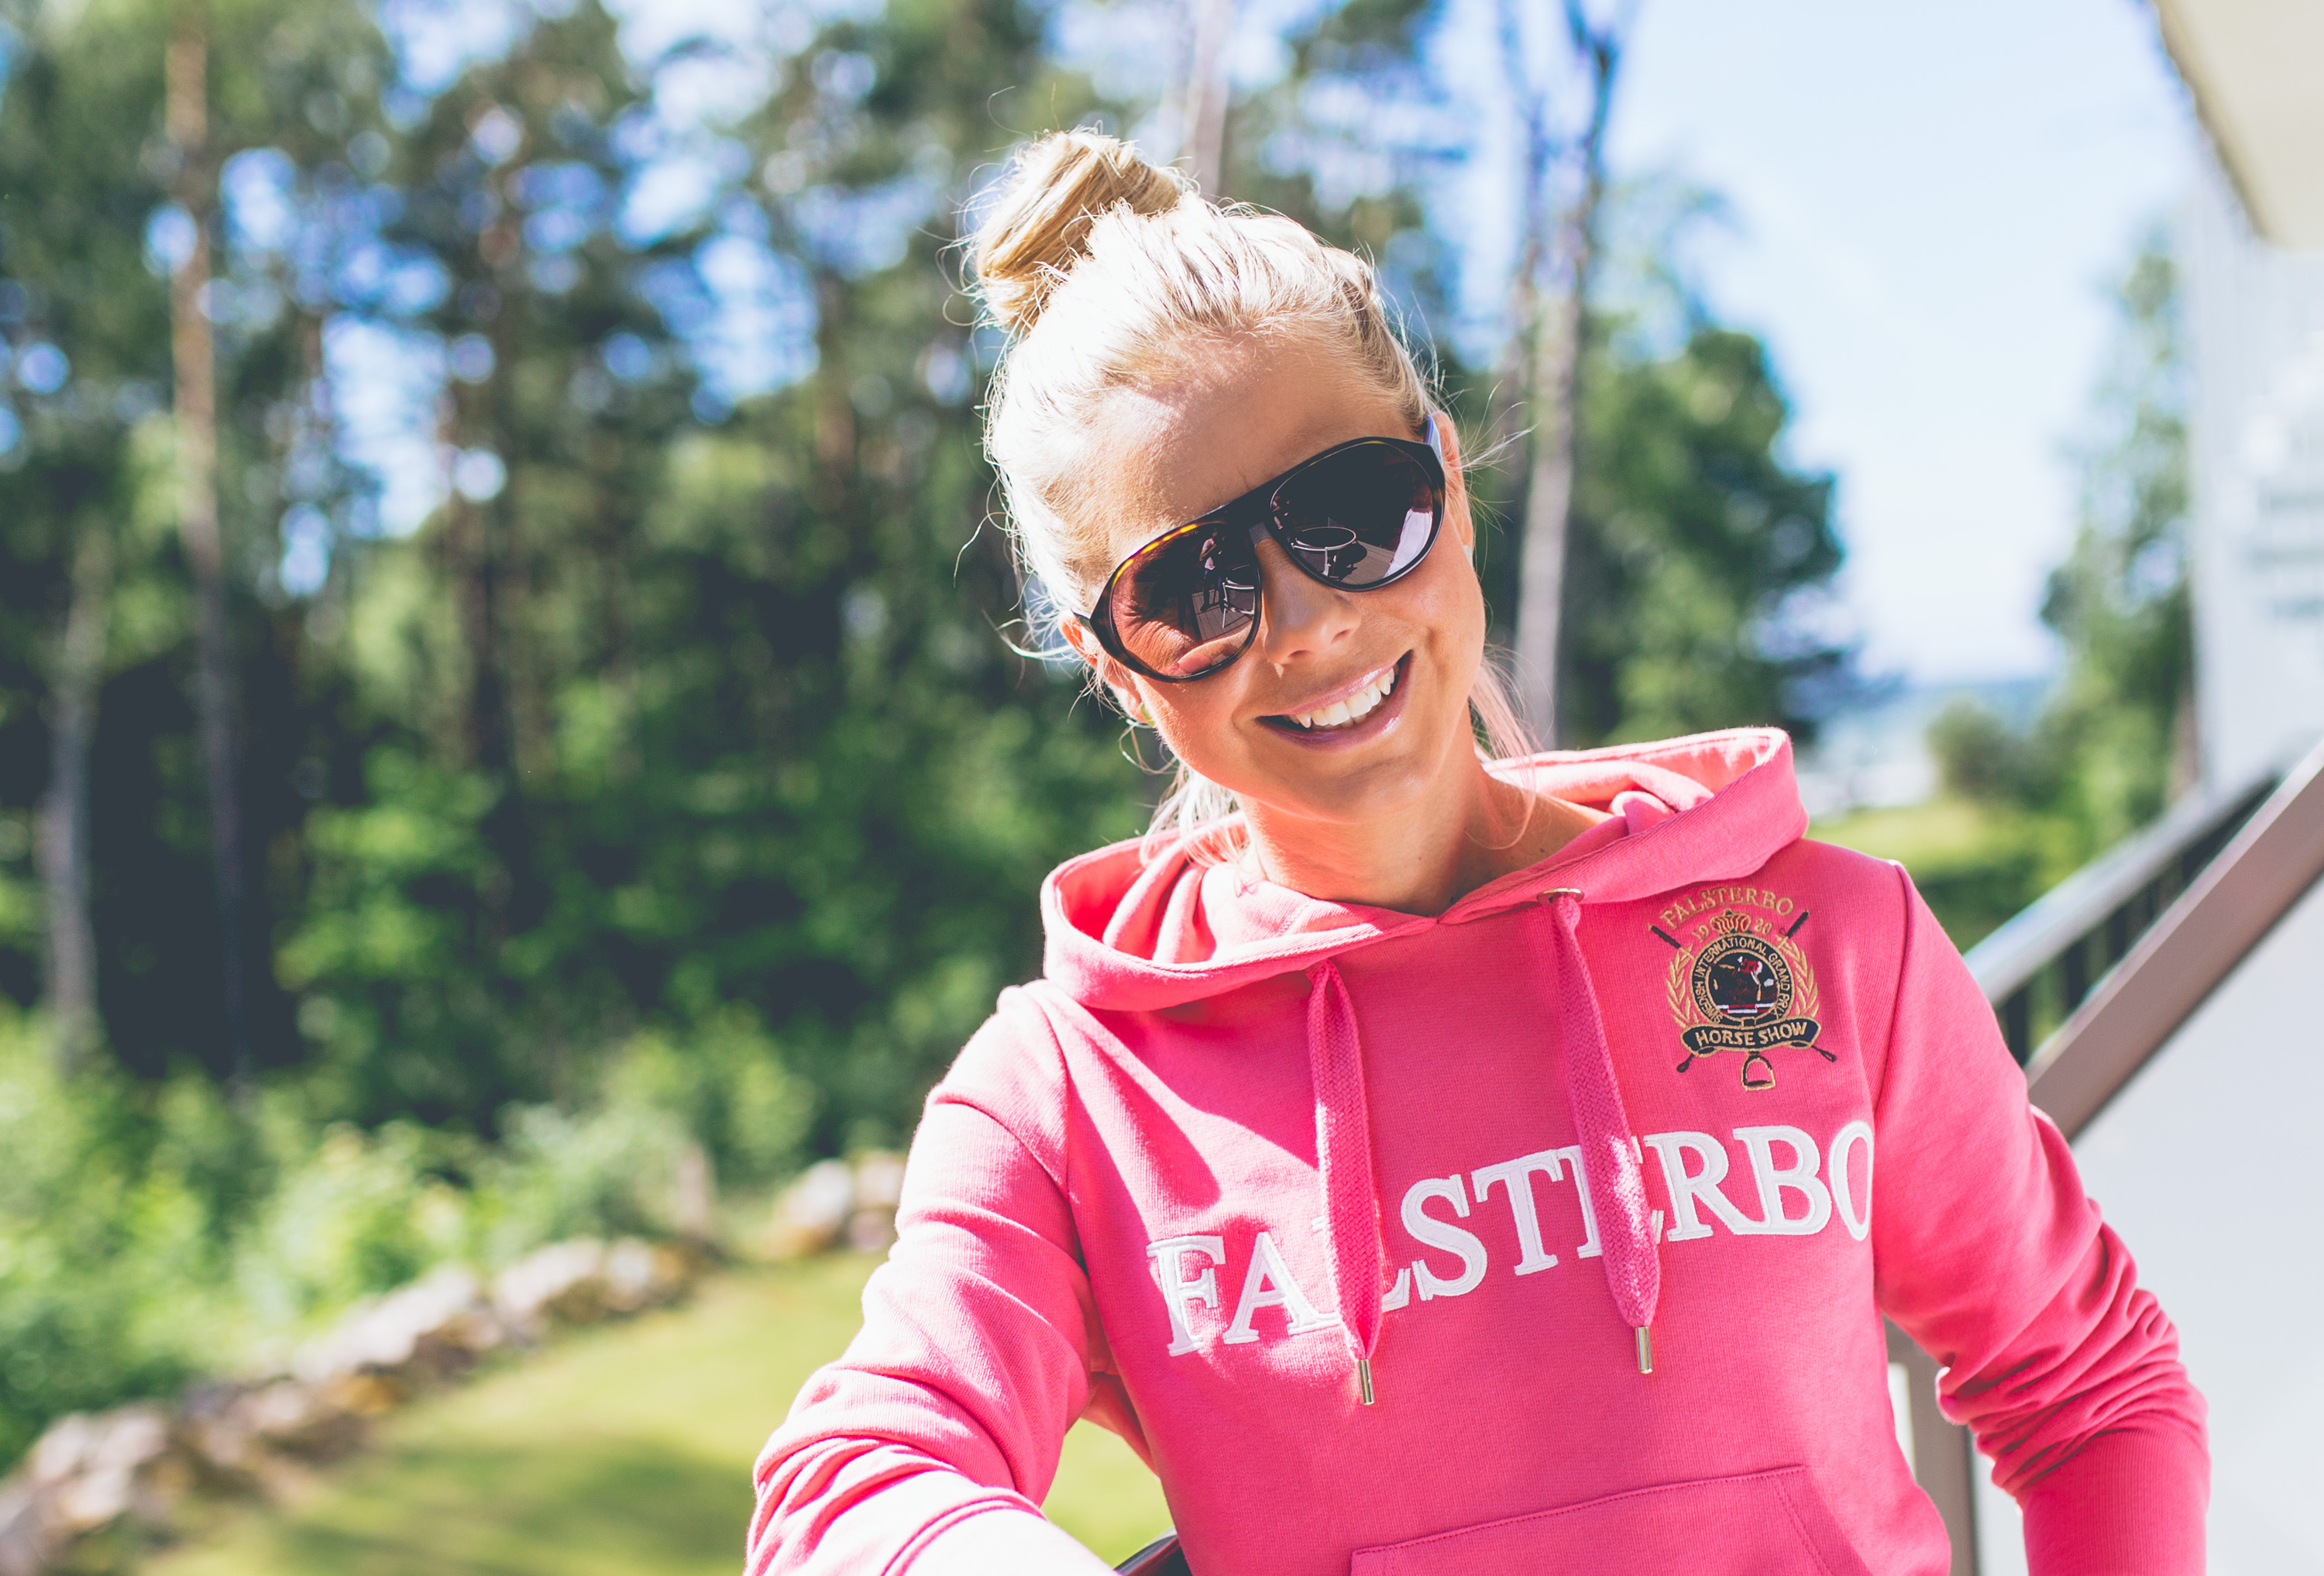 Andrea_Berlin_Hotel_Riviera_Strand_Båstad_Gina_Tricot_Falsterbo_Collection_2017_Hoodie-1369